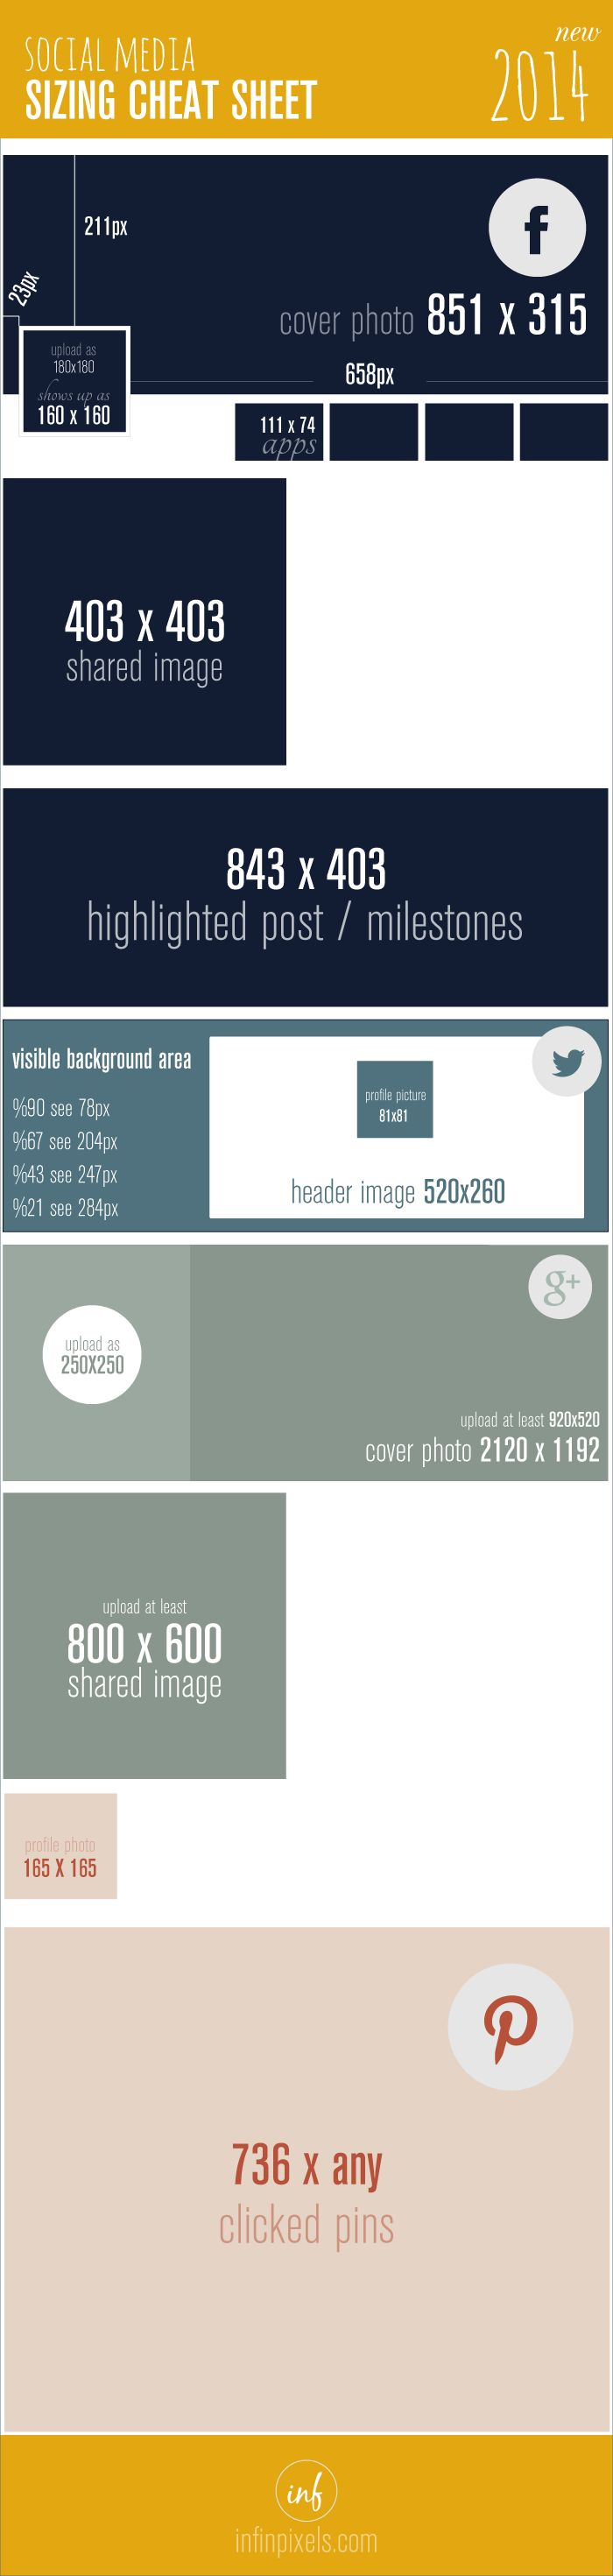 Social Media Sizing Cheat Sheet  http://goto.twitt-erfolg.de/NHzJwbQBK4